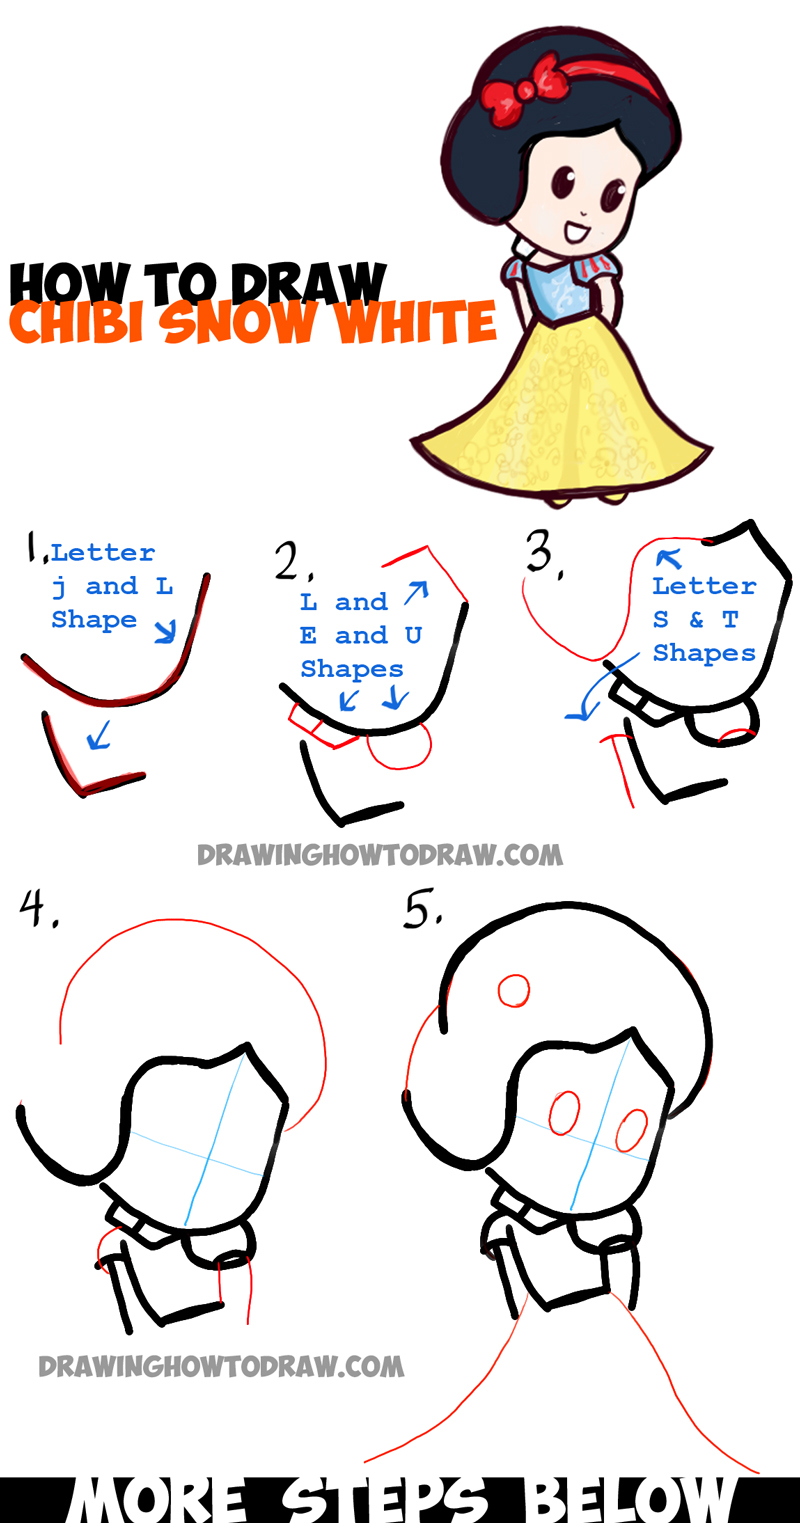 How to draw cute baby chibi snow white in simple step by for Easy things to draw for kids step by step